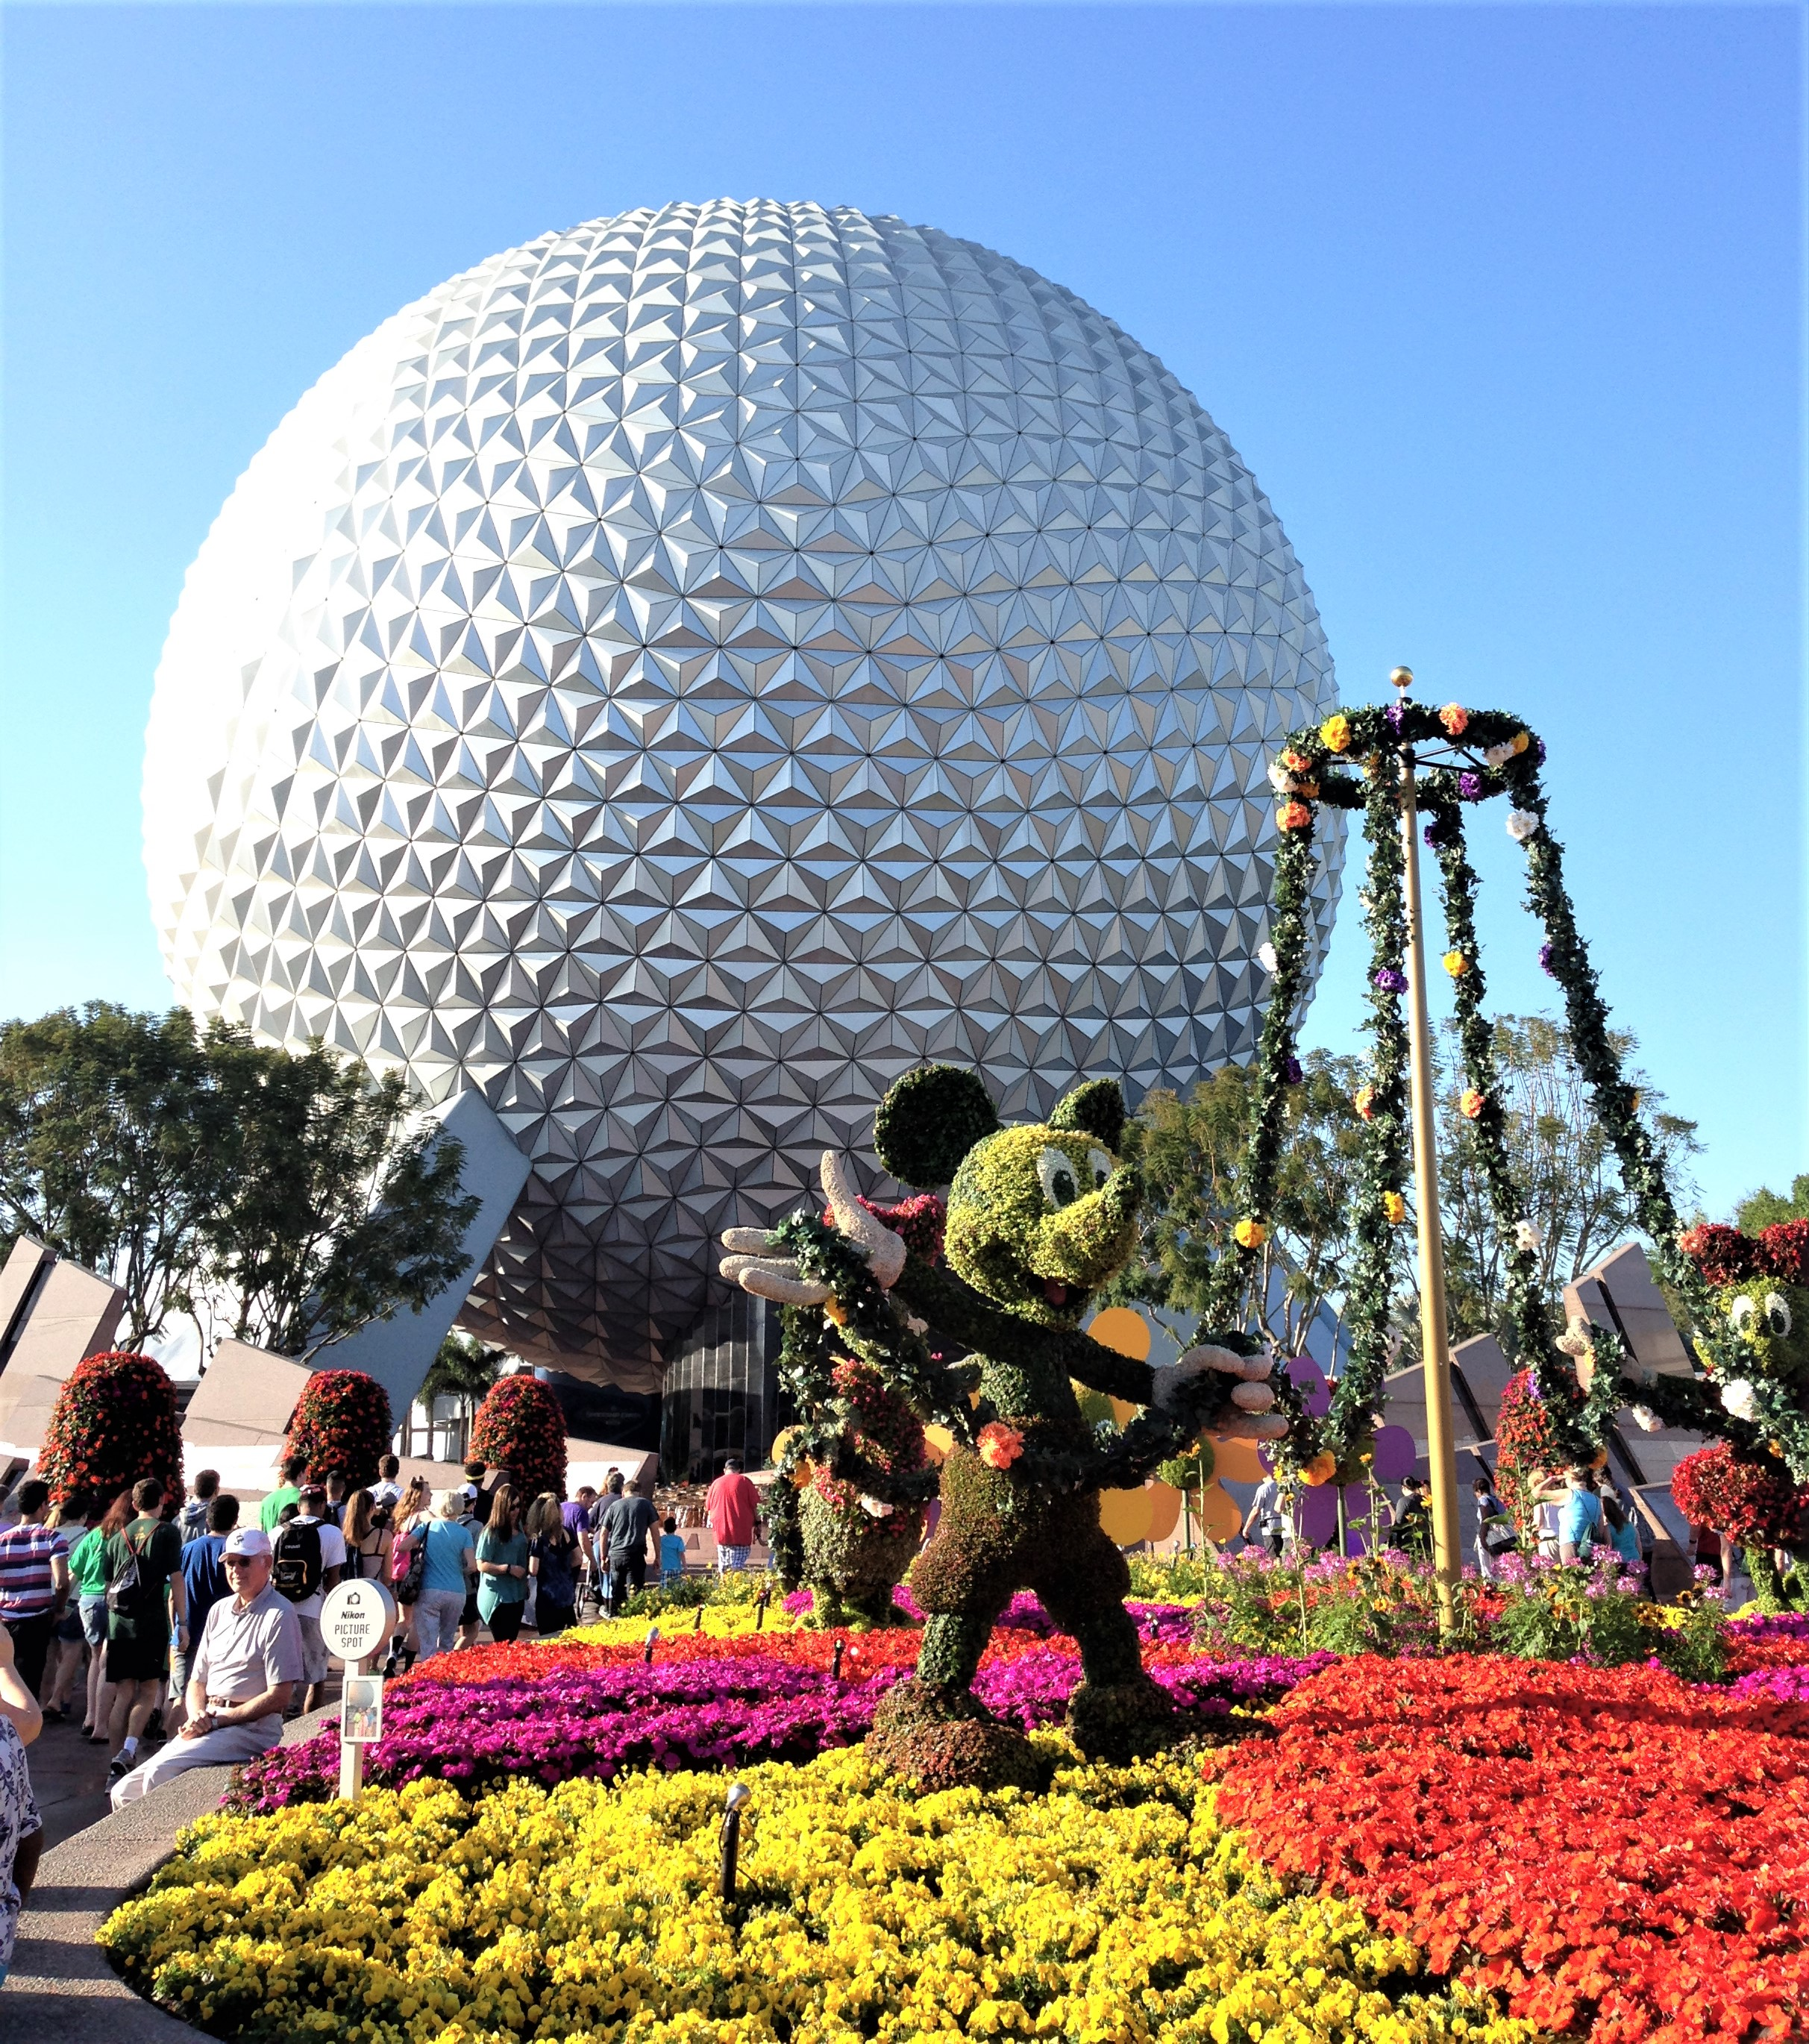 spaceship earth with flowers - disney world weather in march